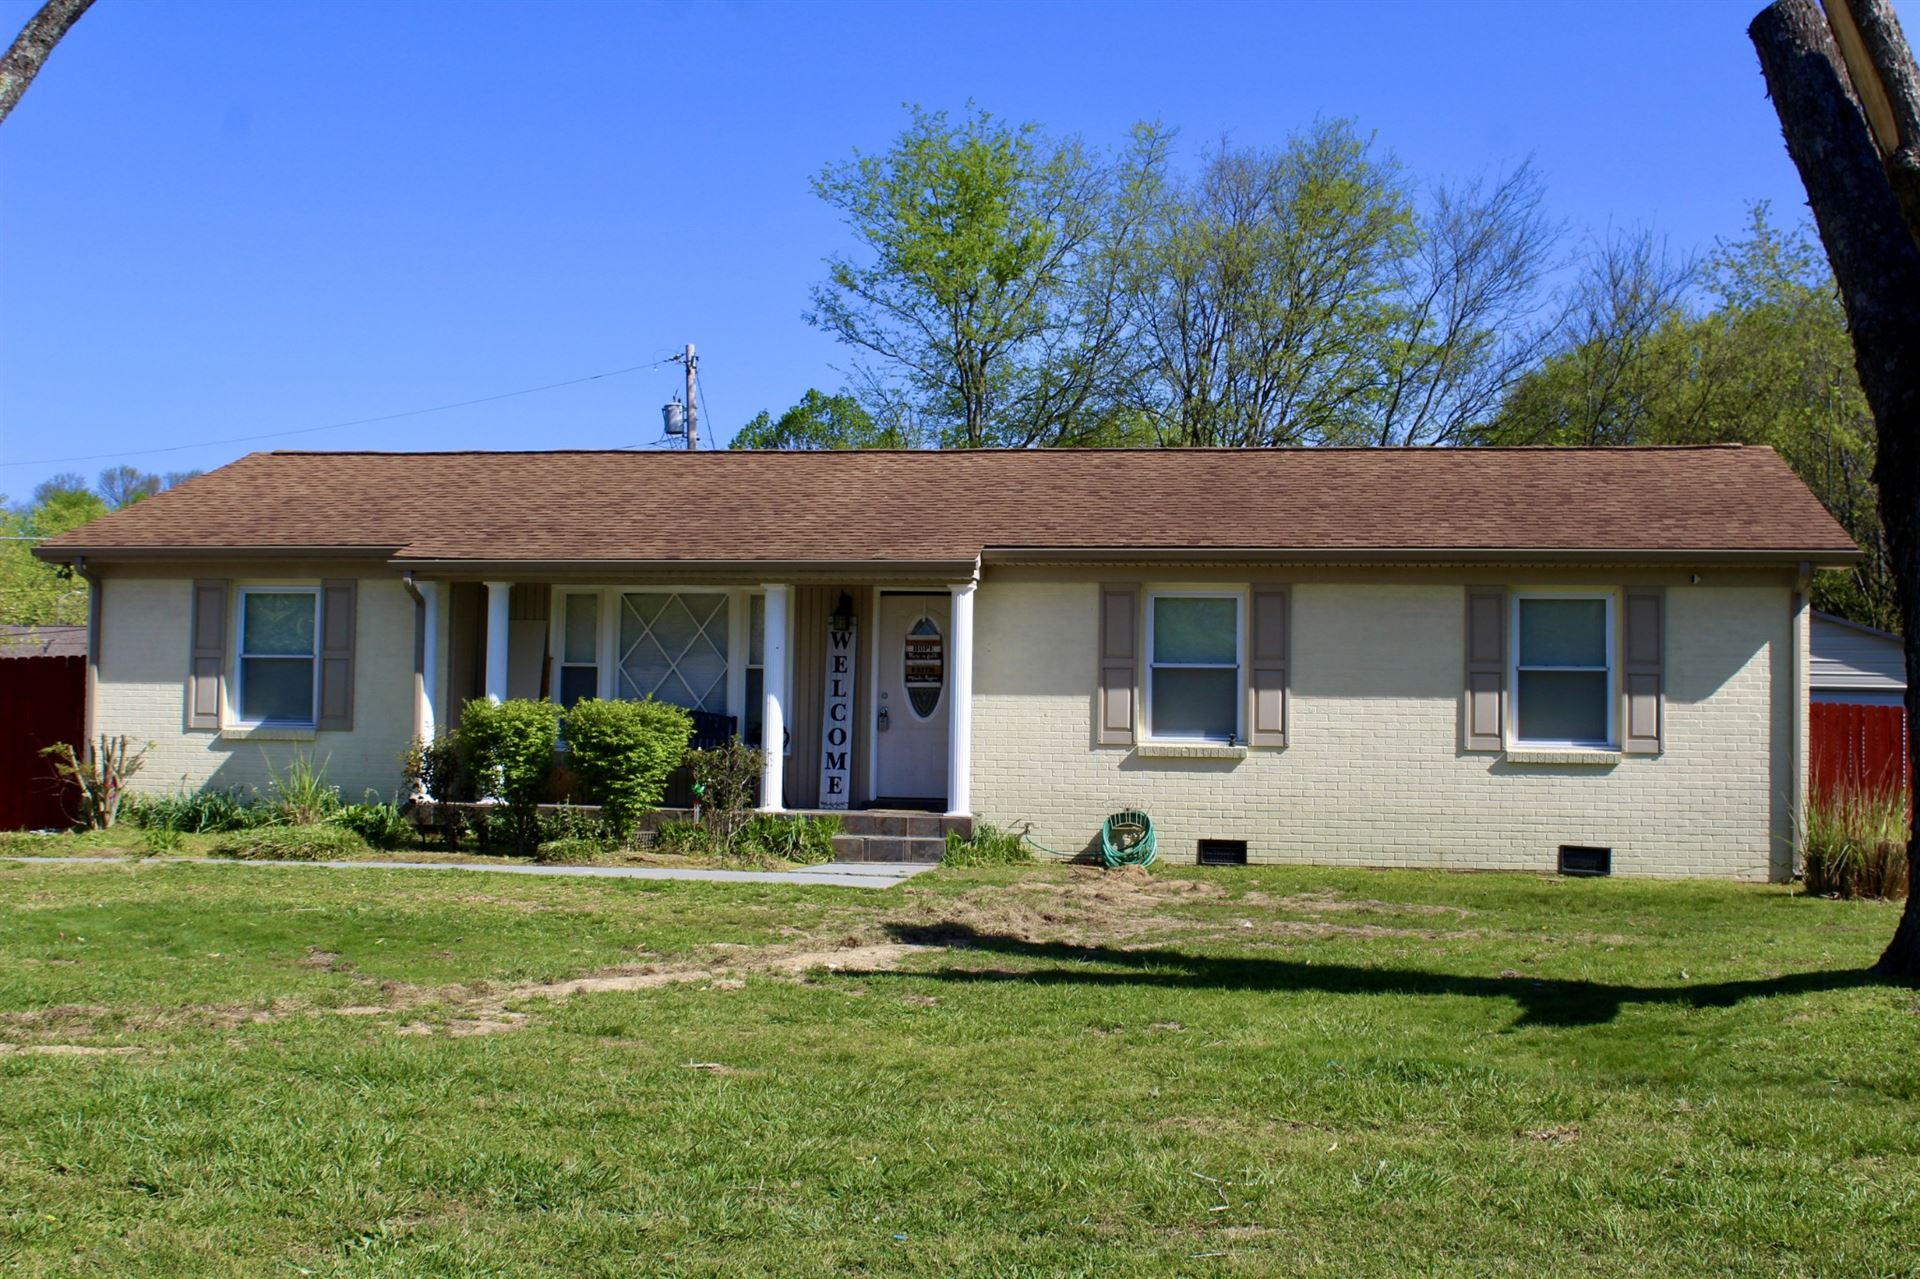 101 Rainbow St, Clarksville, TN 37042 - MLS#: 2243759